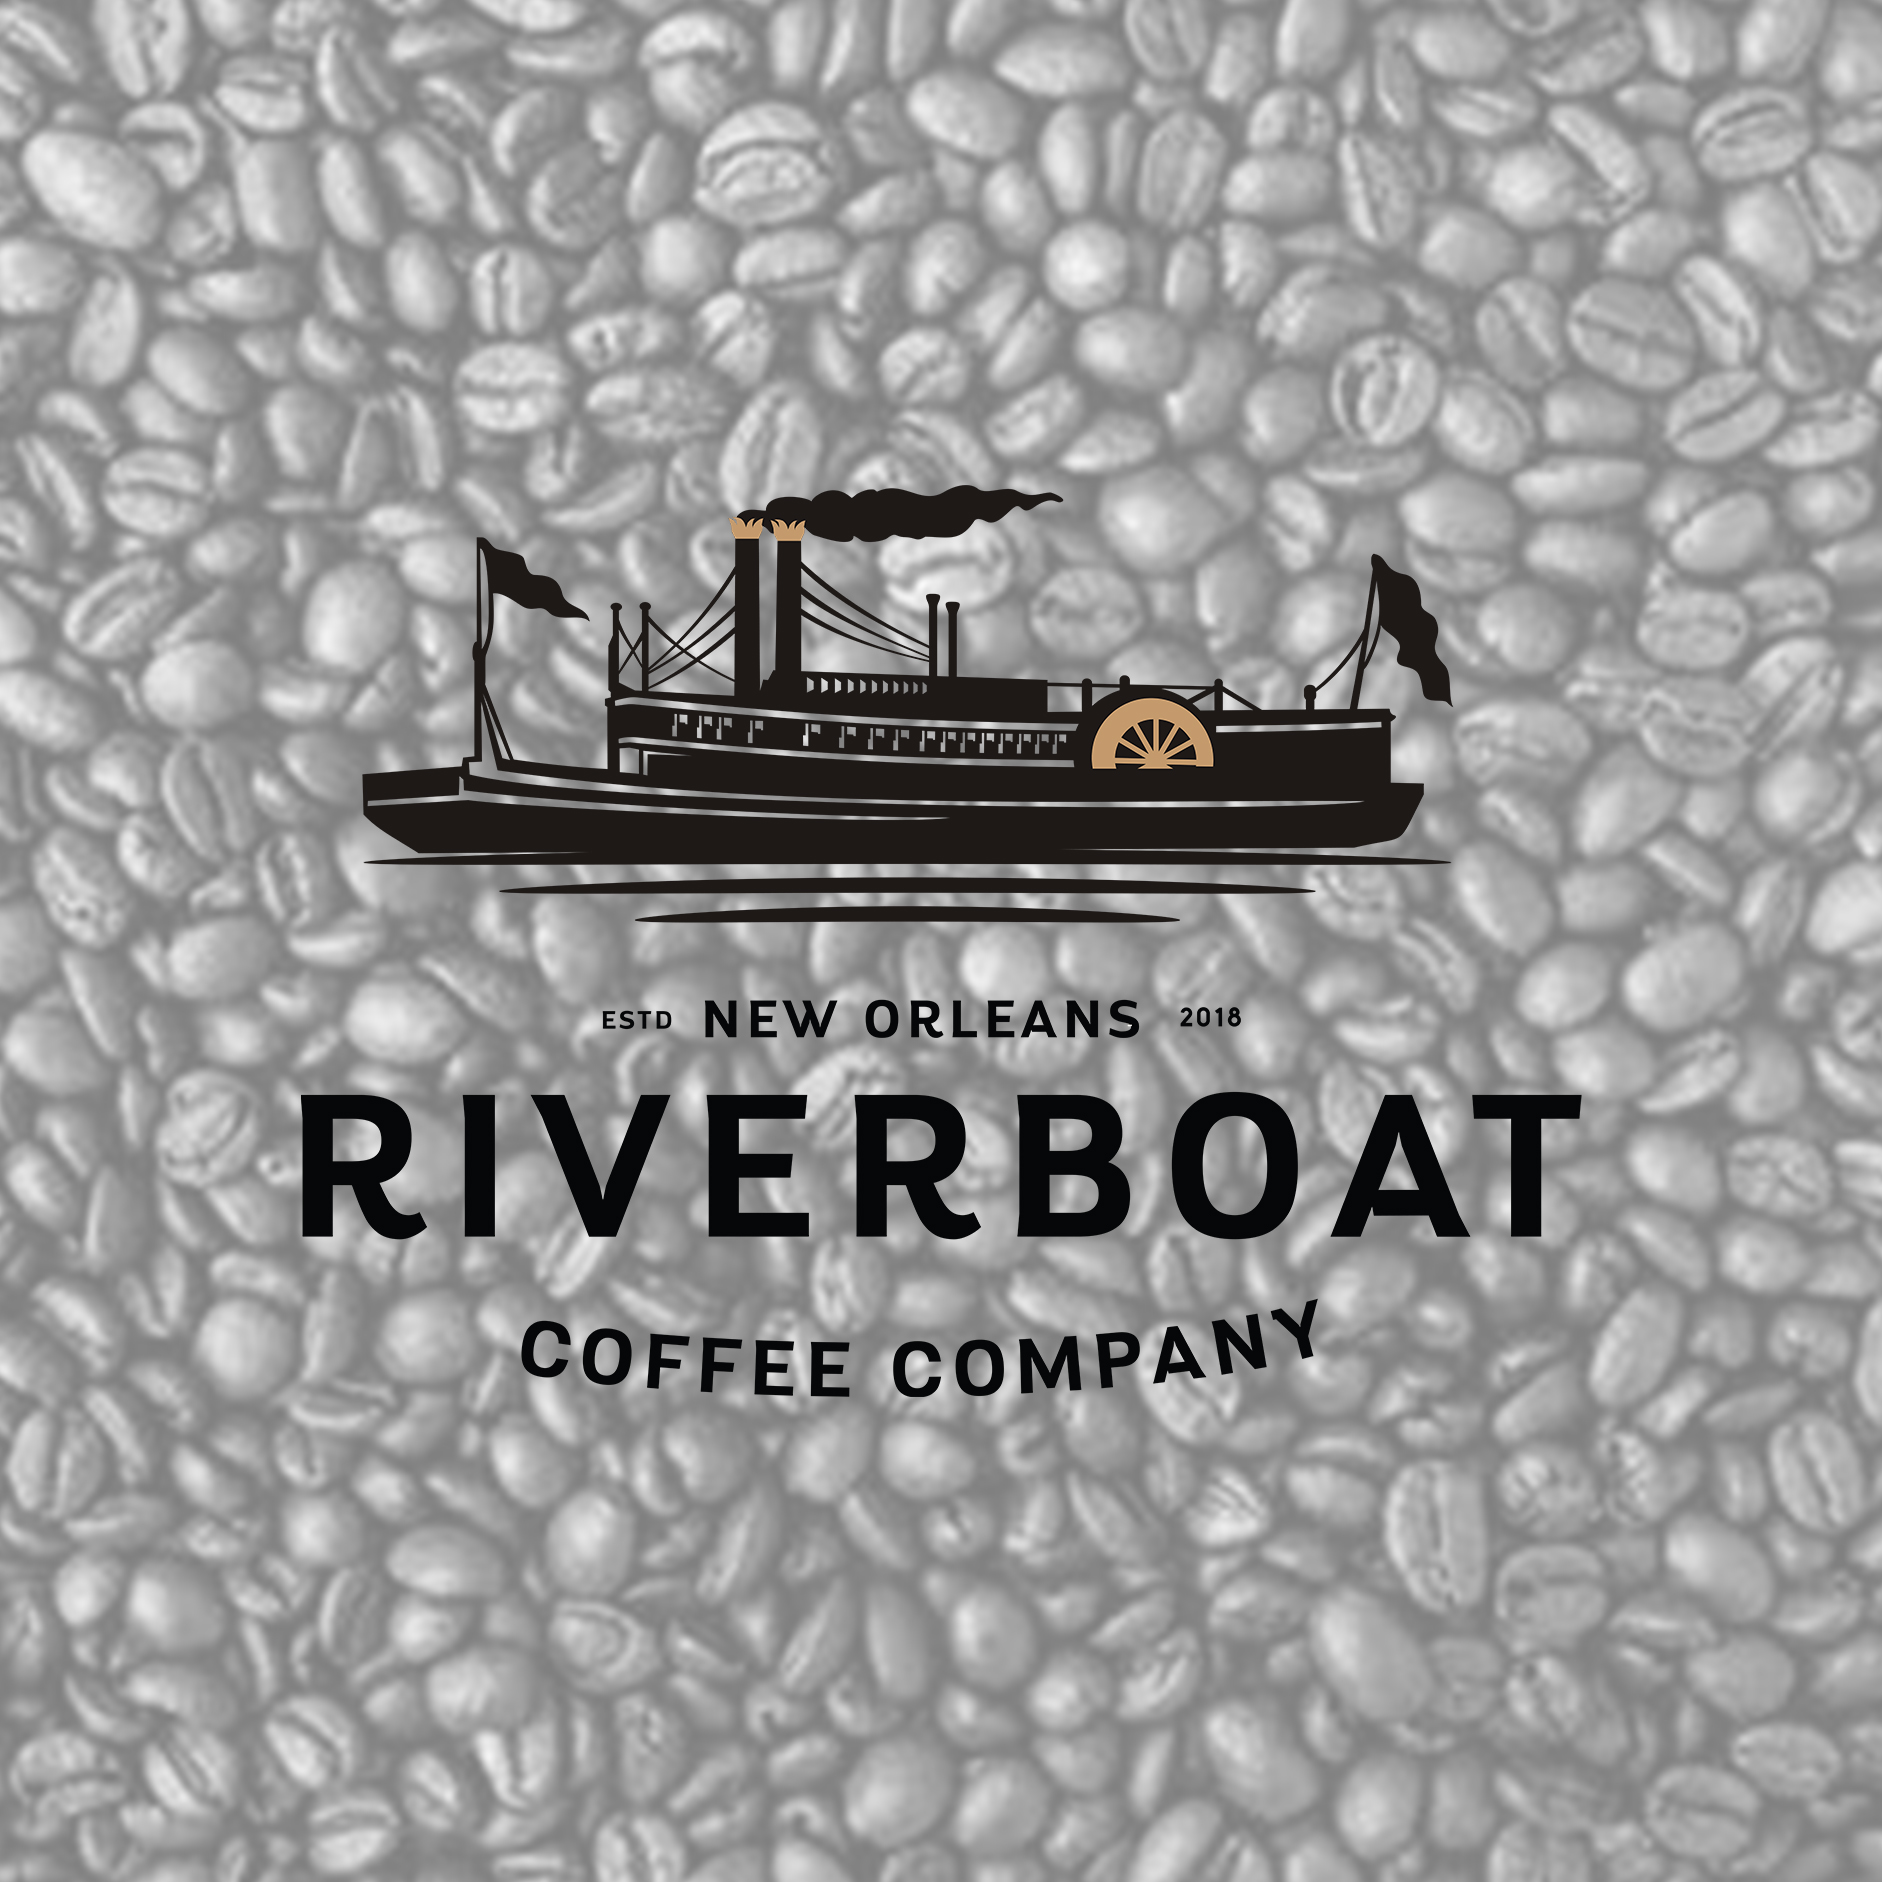 Riverboat Coffee Company